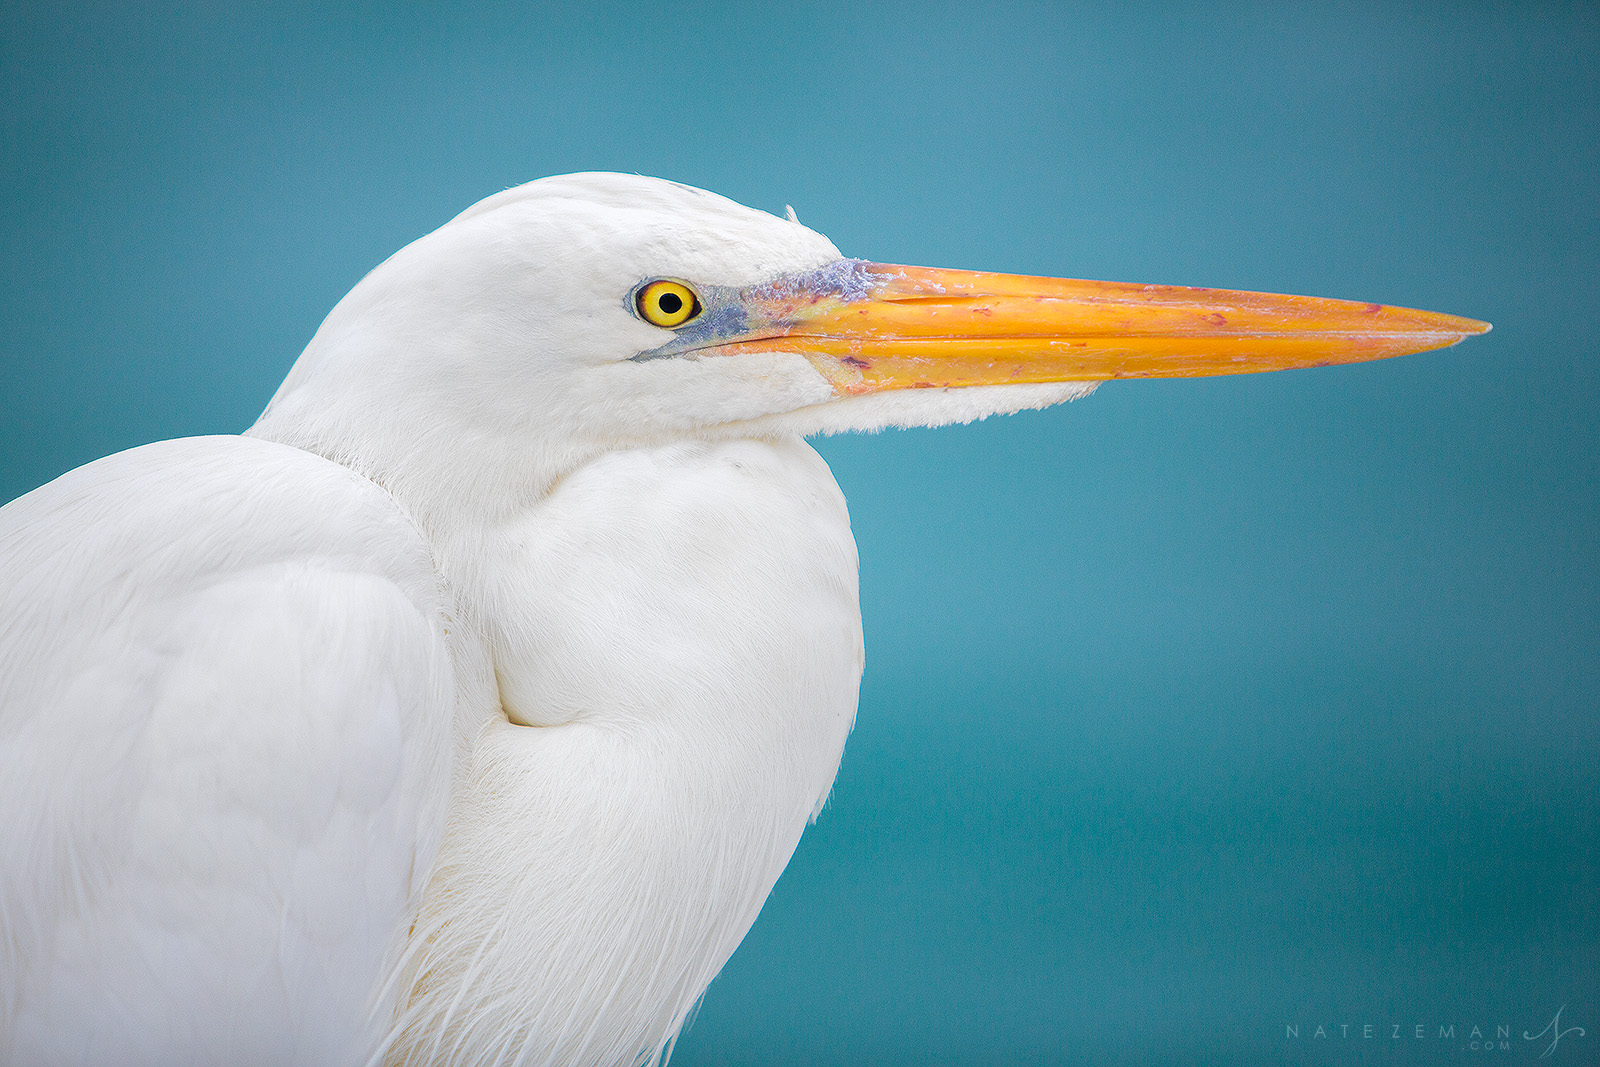 great egret, florida keys, key west, florida, portrait, aqua, blue, water, photo